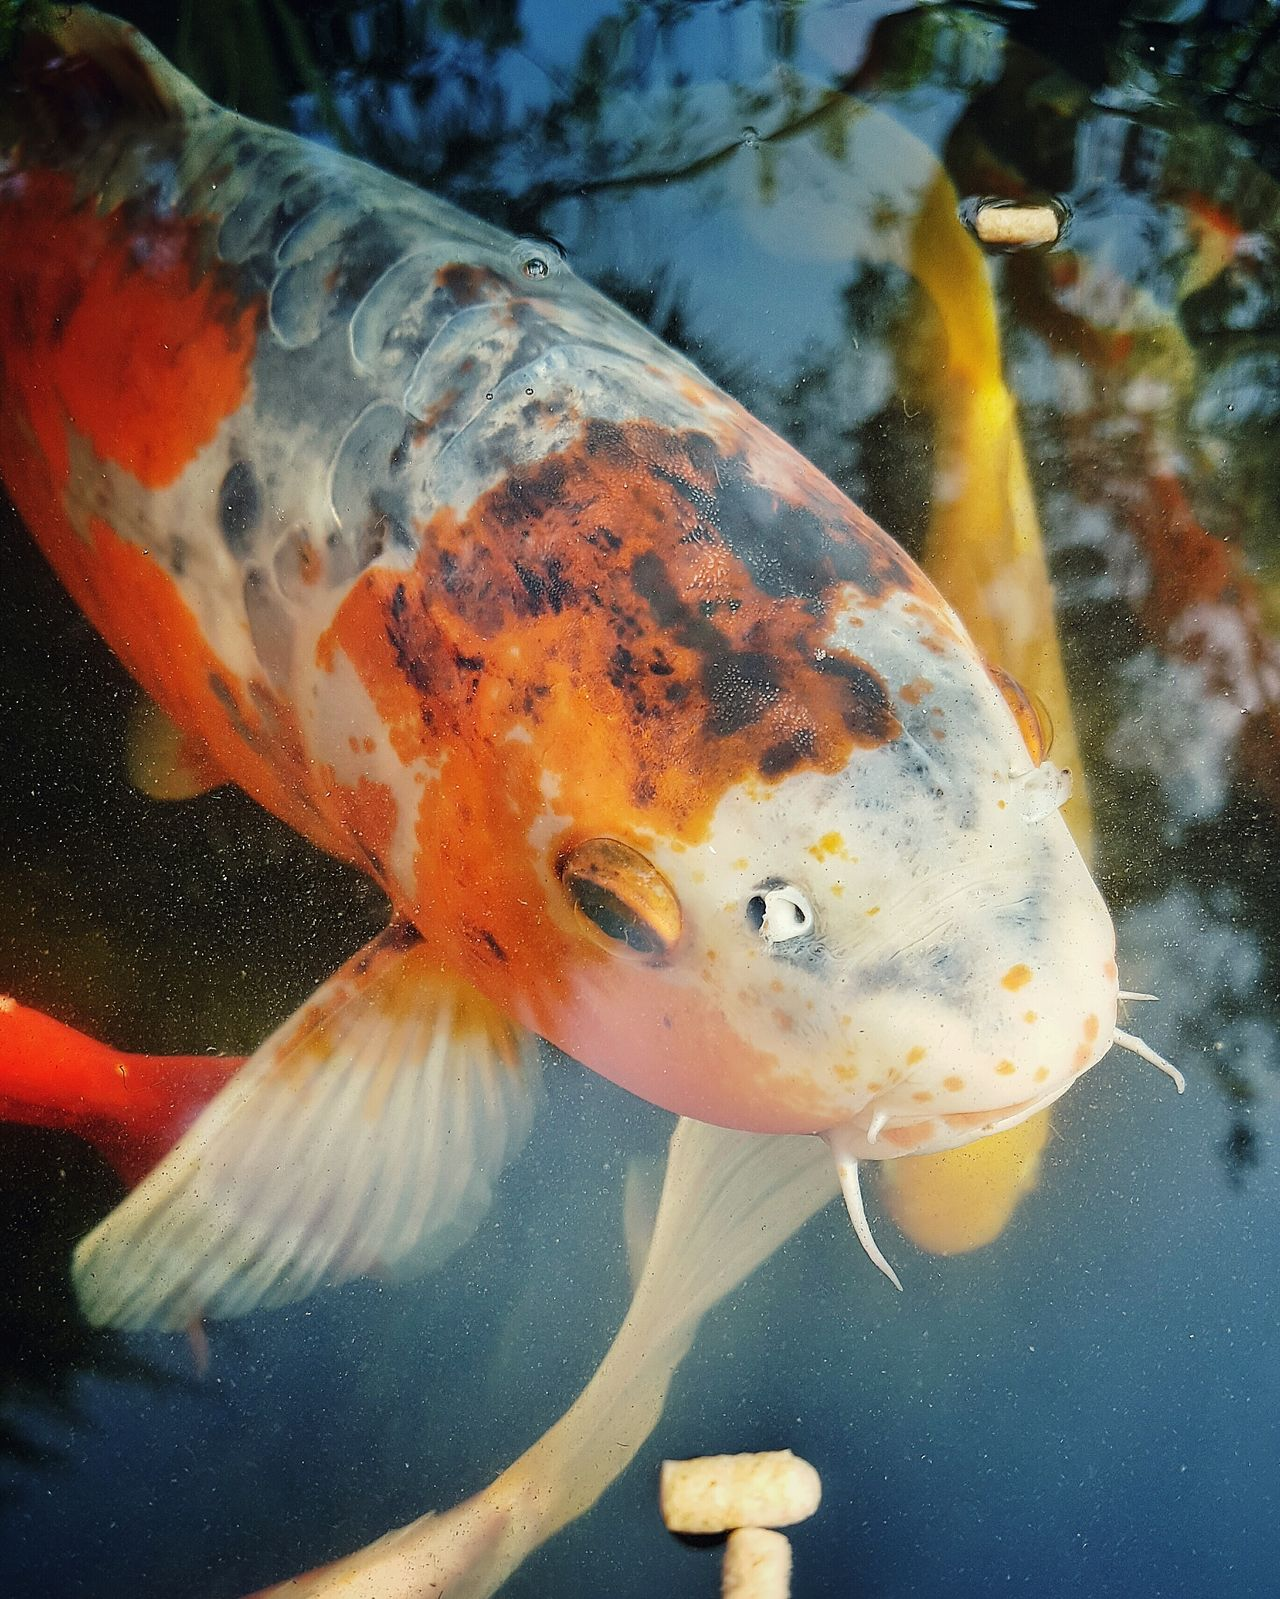 Koi Koi Fish Koi Pond Koi Carp Koifish KoiPond Koi Fishes Koi Carps Aquarium Aquarium Life Fish Tank Fishes Check This Out Scales And Fins Scales